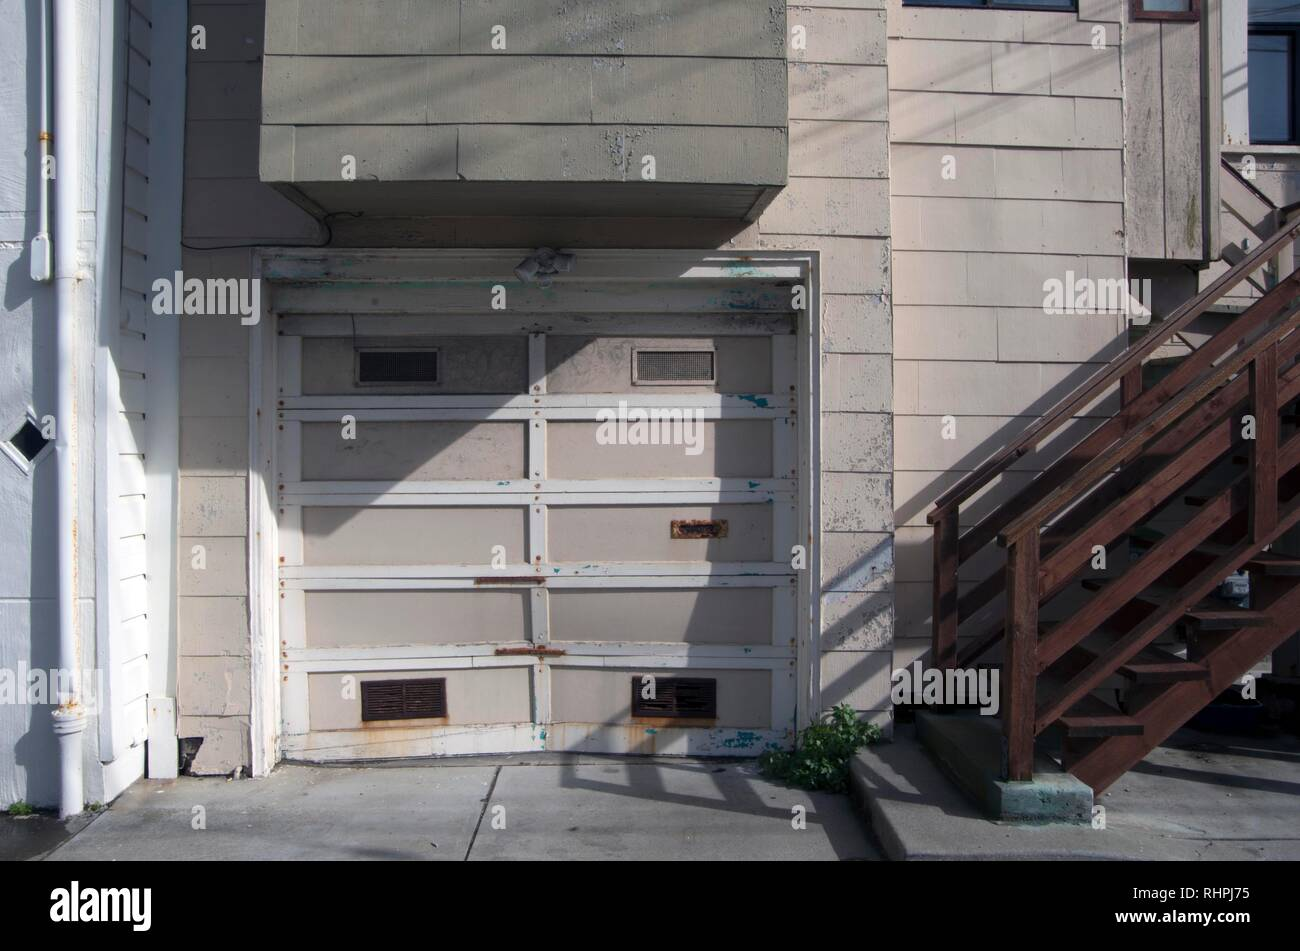 Garage doors can take on many different shapes, sizes and designs. - Stock Image